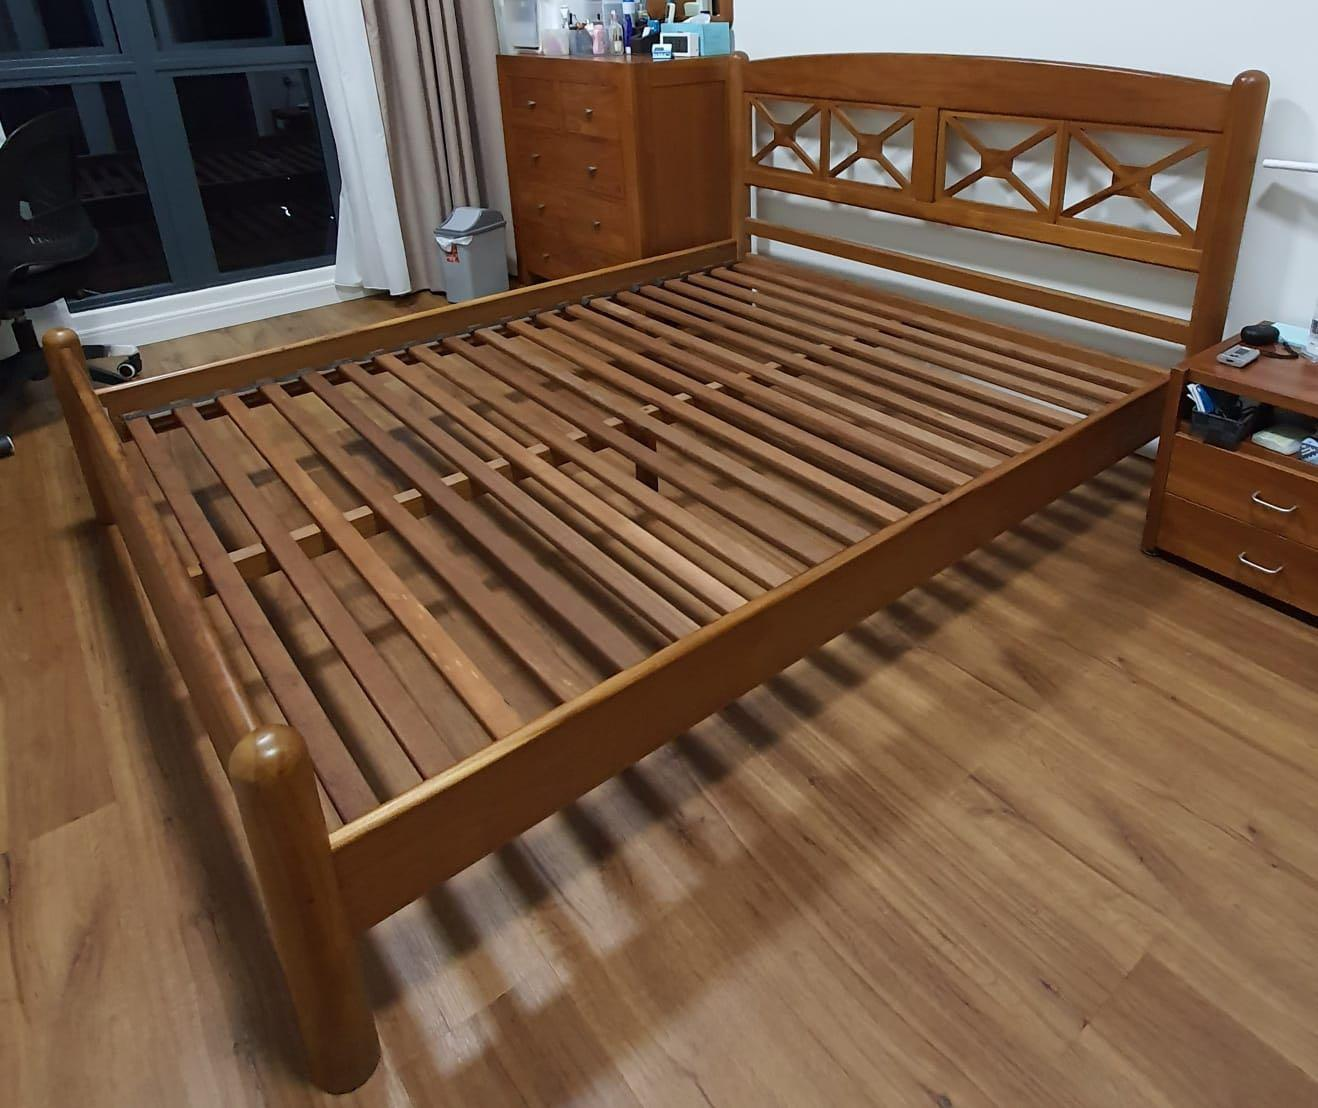 Picture of: Used Scanteak Queen Bed Frame For Sale At 250 Furniture Beds Mattresses On Carousell